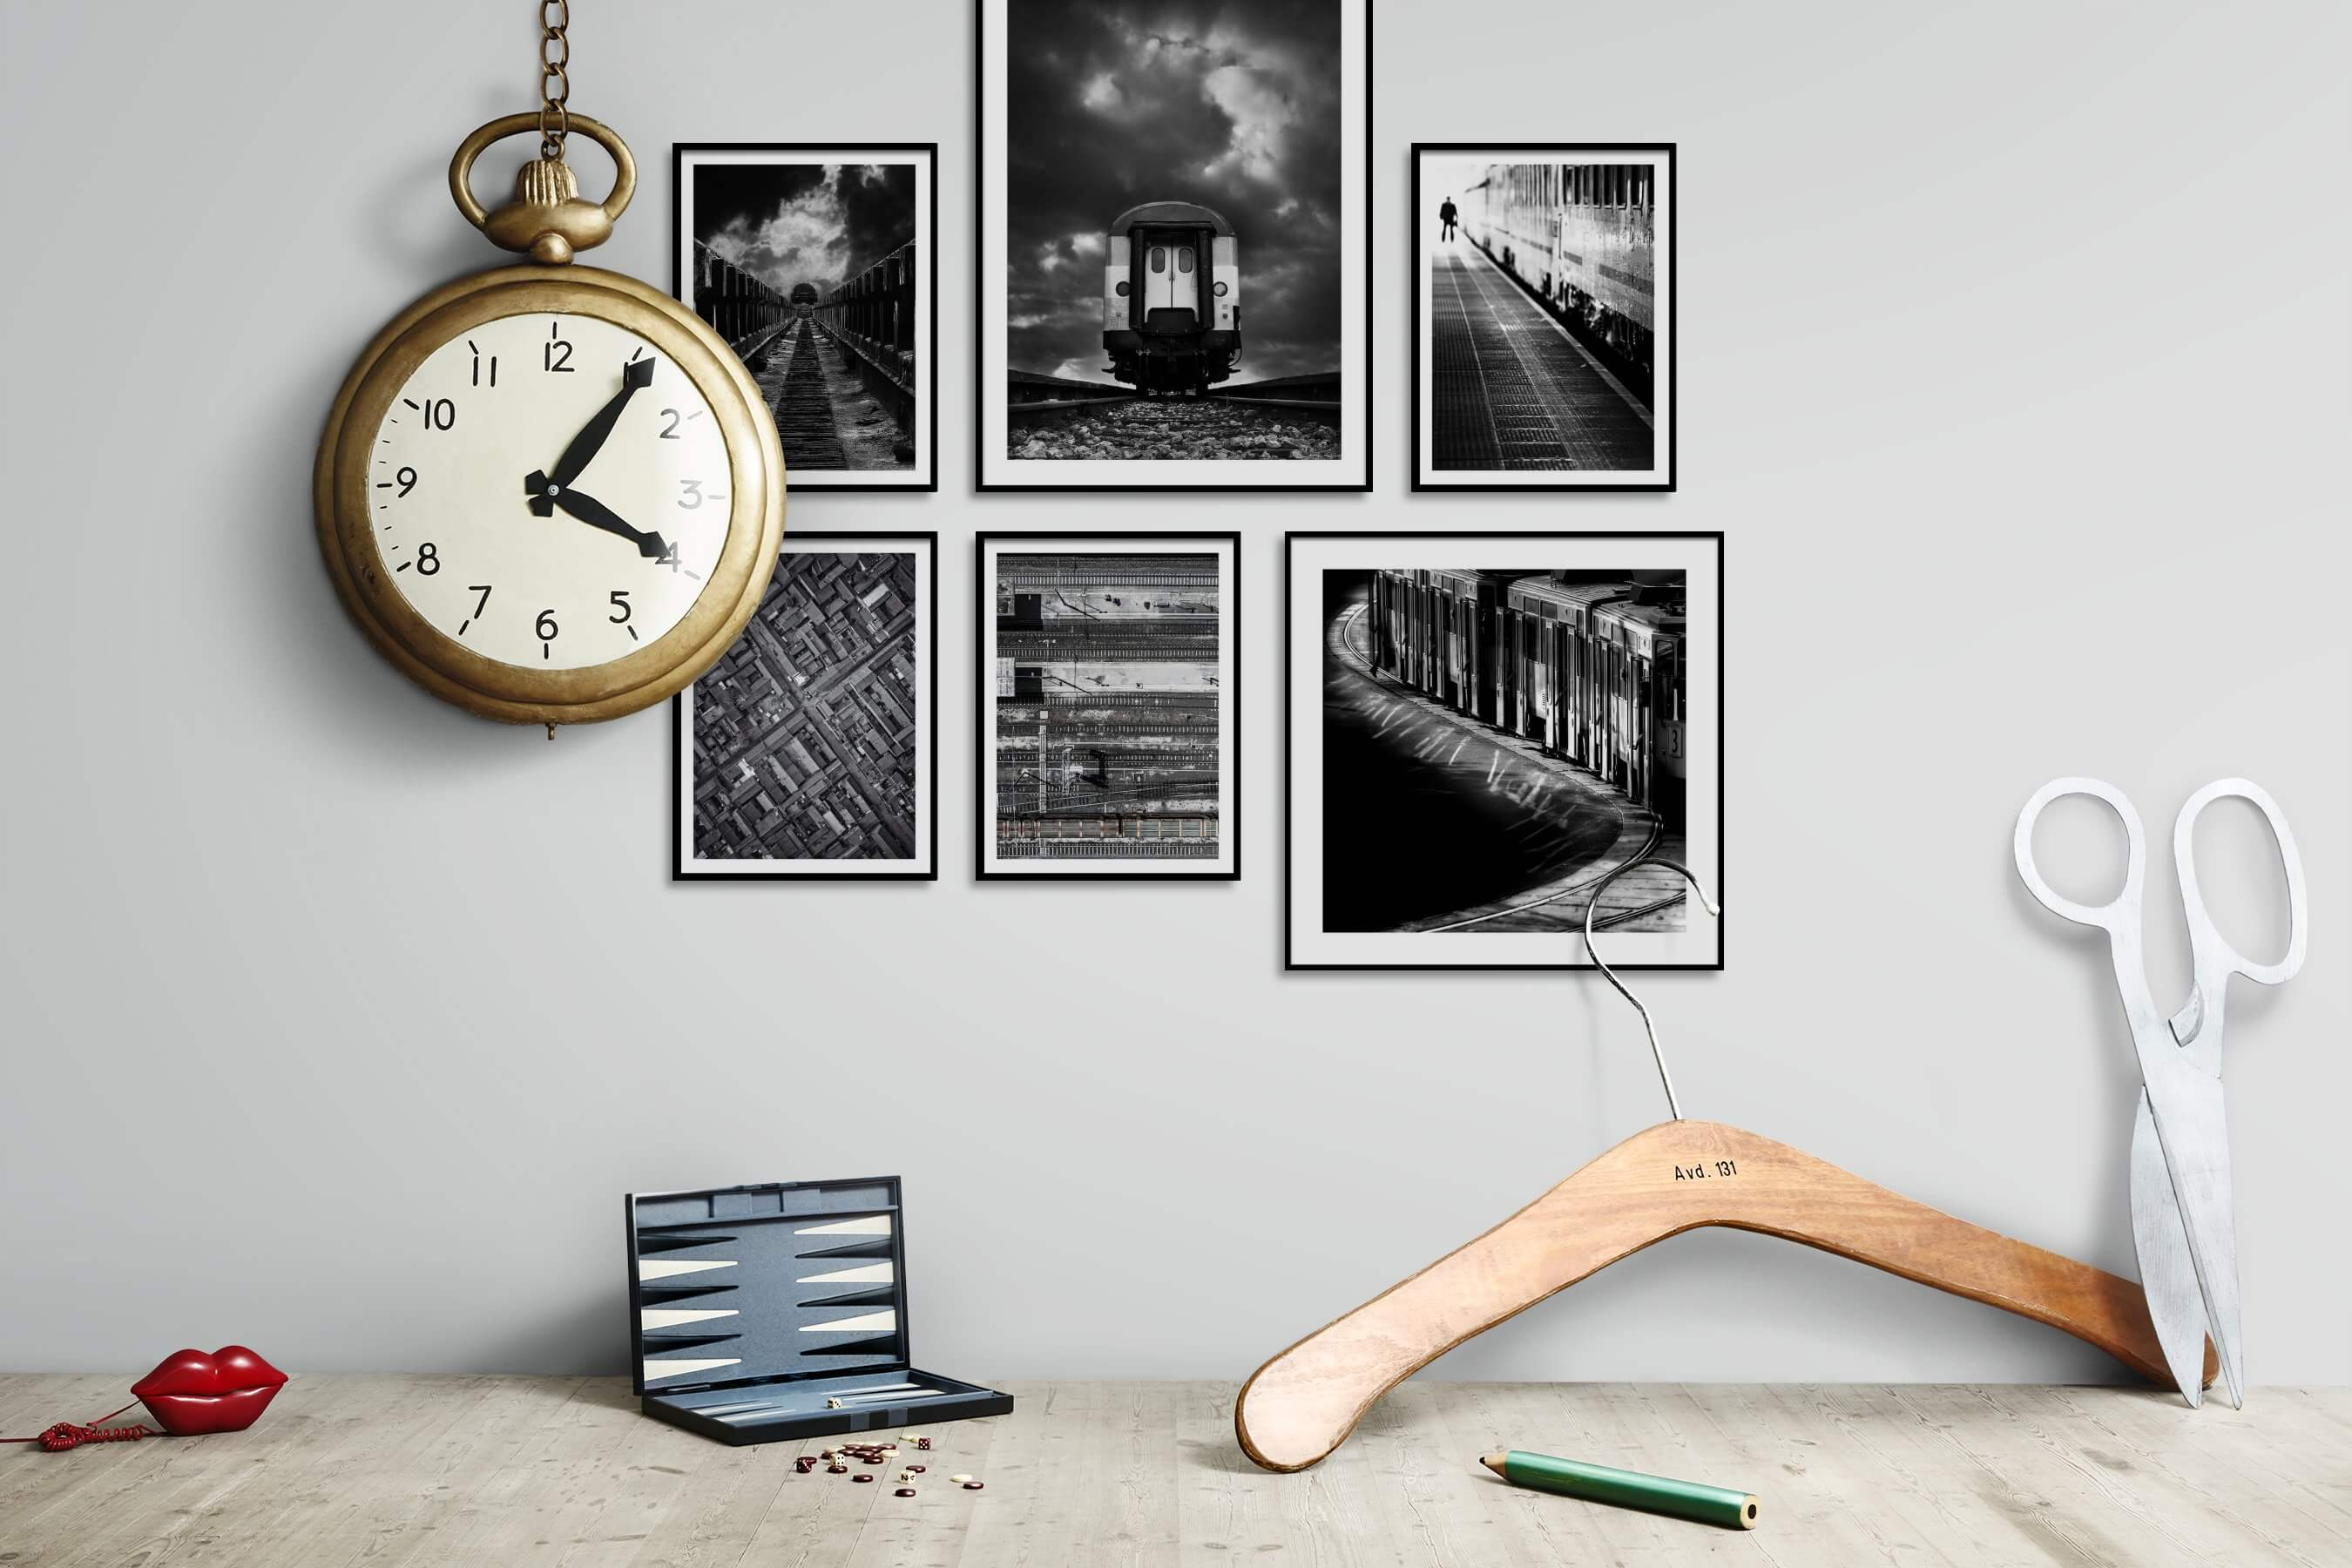 Gallery wall idea with six framed pictures arranged on a wall depicting Black & White, Country Life, For the Maximalist, and City Life